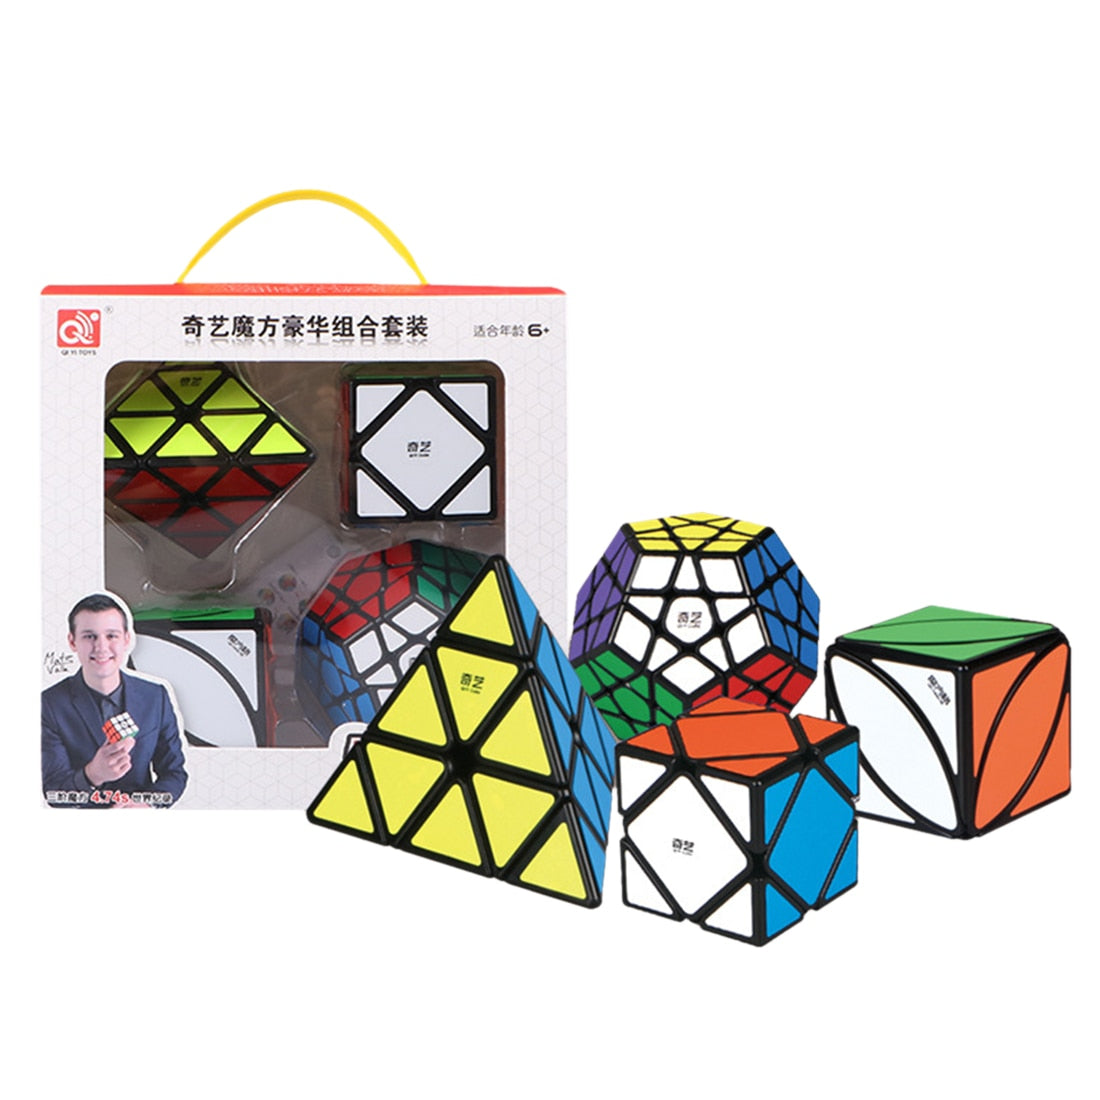 12-sides Skew Lvy Cube Magic Speed Cube Puzzle Set Black Professional Cubo Magico Toys for Children Kids With Gift Box